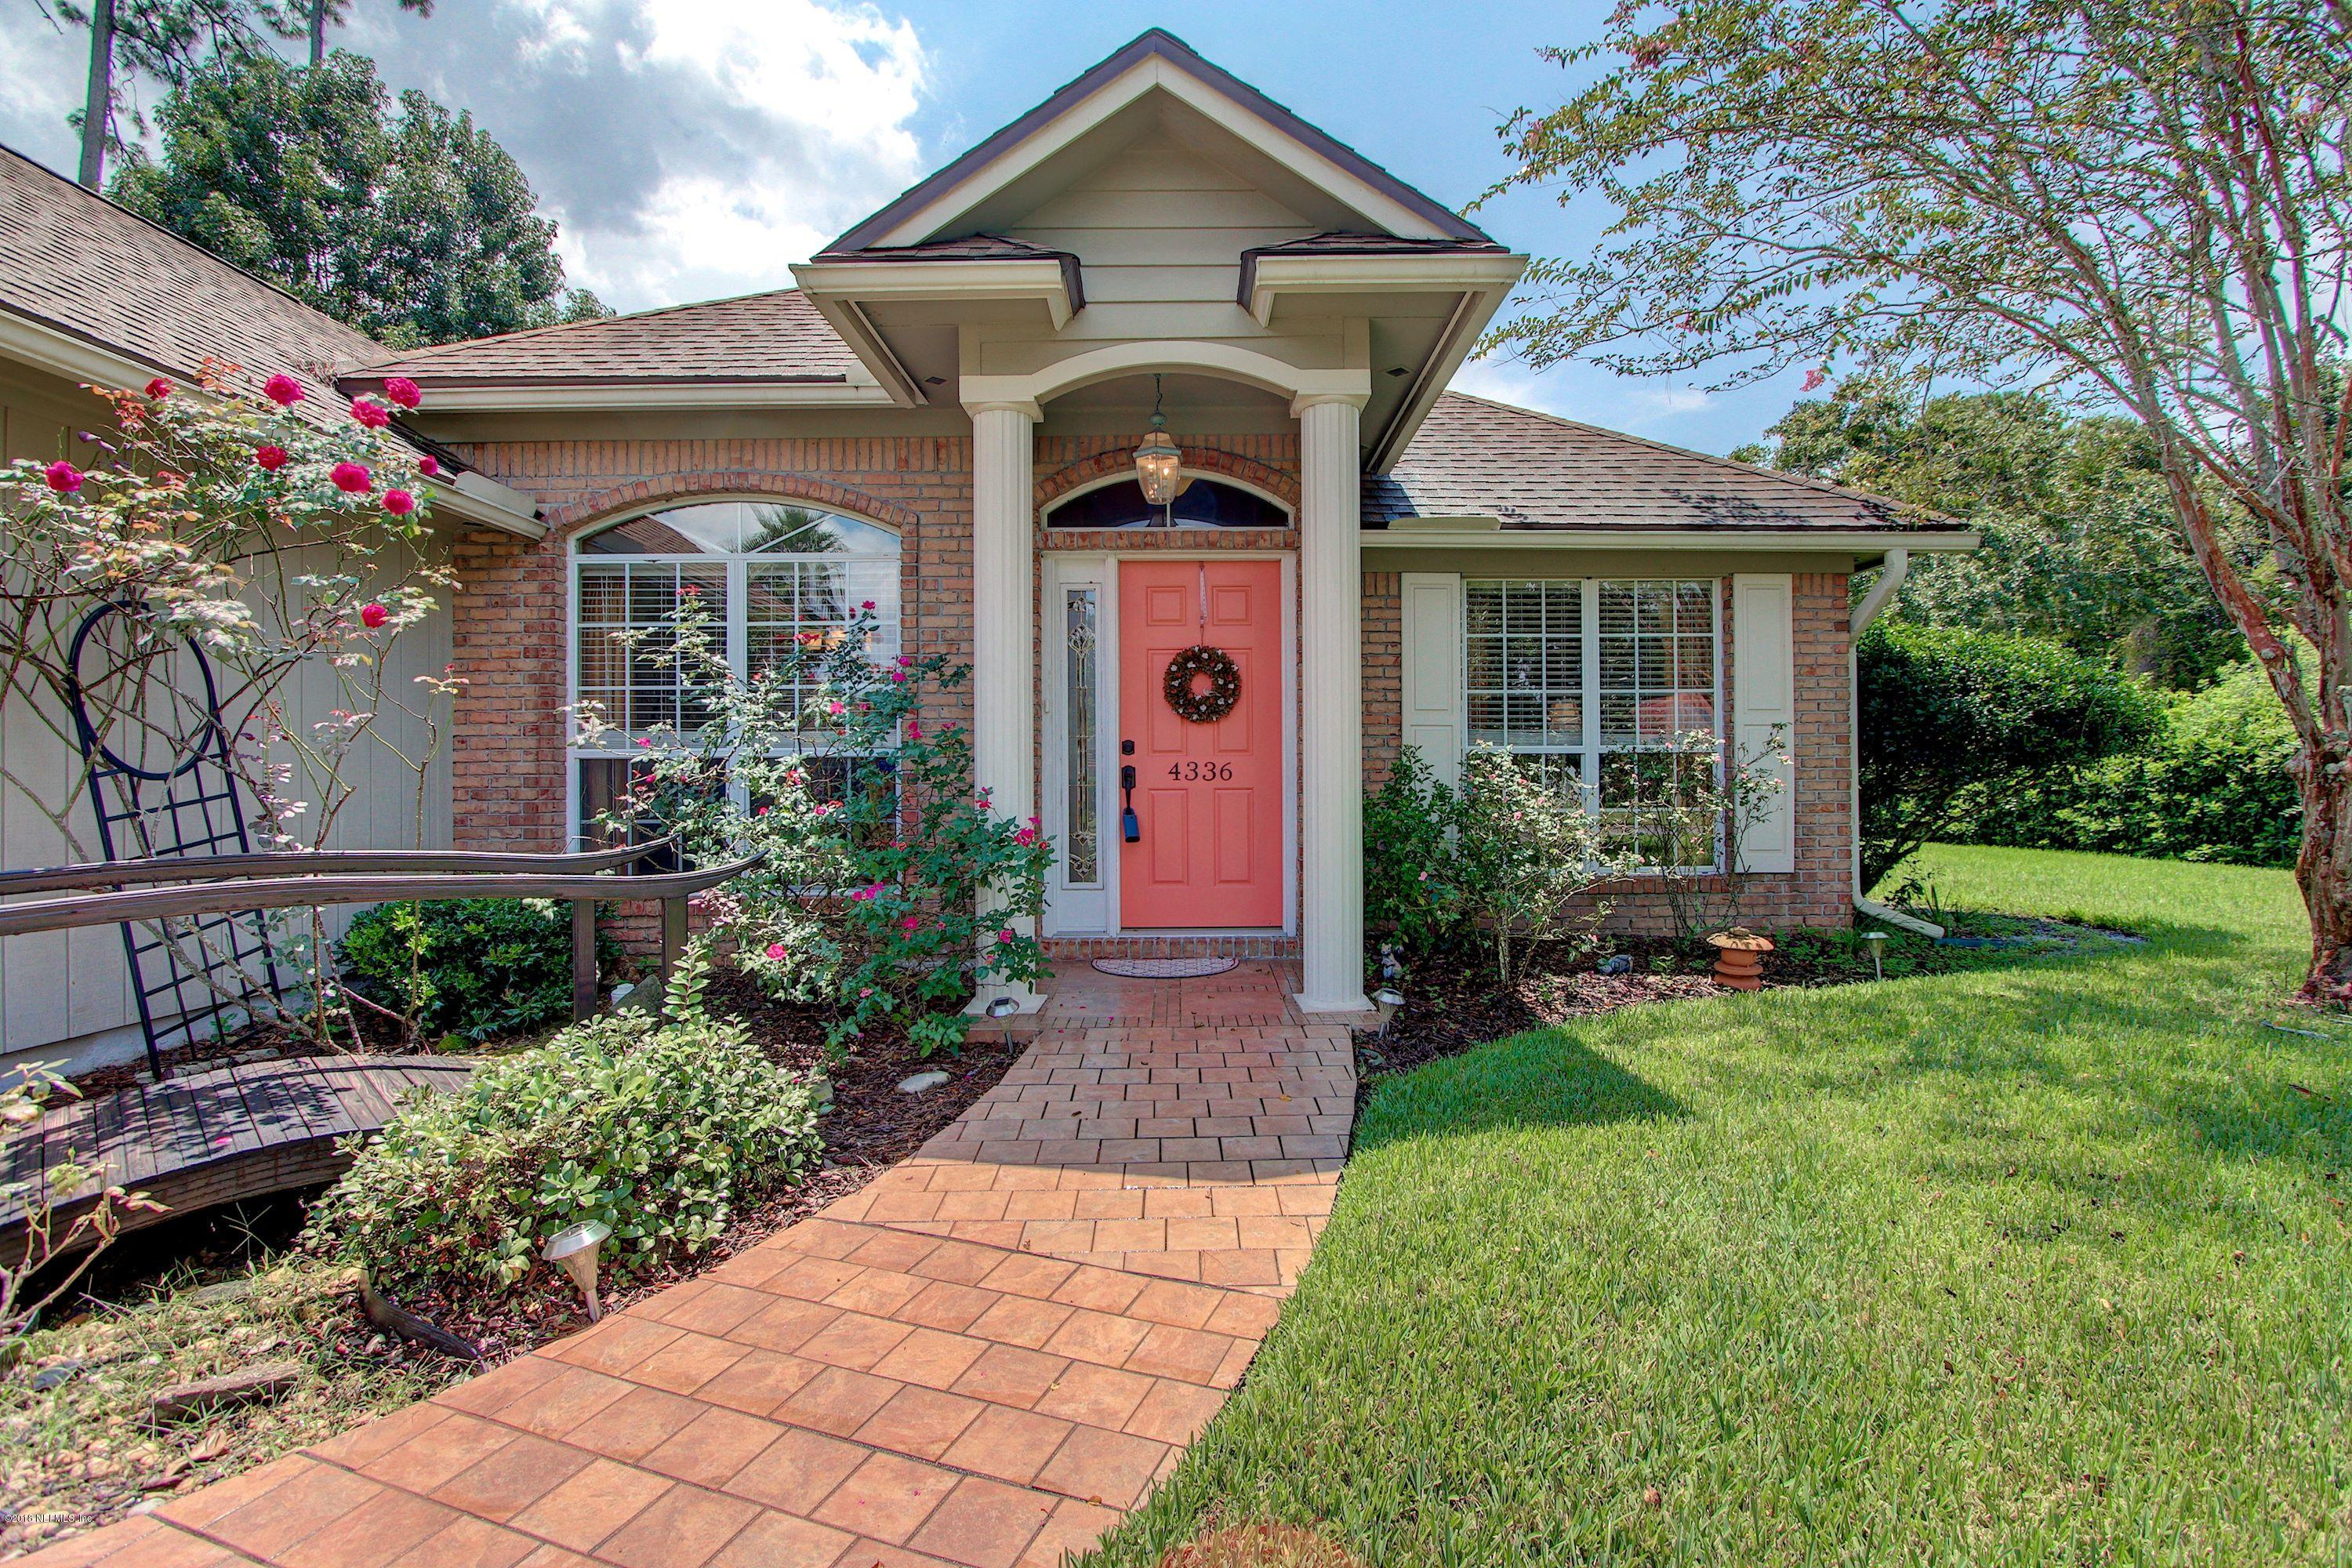 4336 HOLLYGATE, JACKSONVILLE, FLORIDA 32258, 4 Bedrooms Bedrooms, ,2 BathroomsBathrooms,Residential - single family,For sale,HOLLYGATE,928624